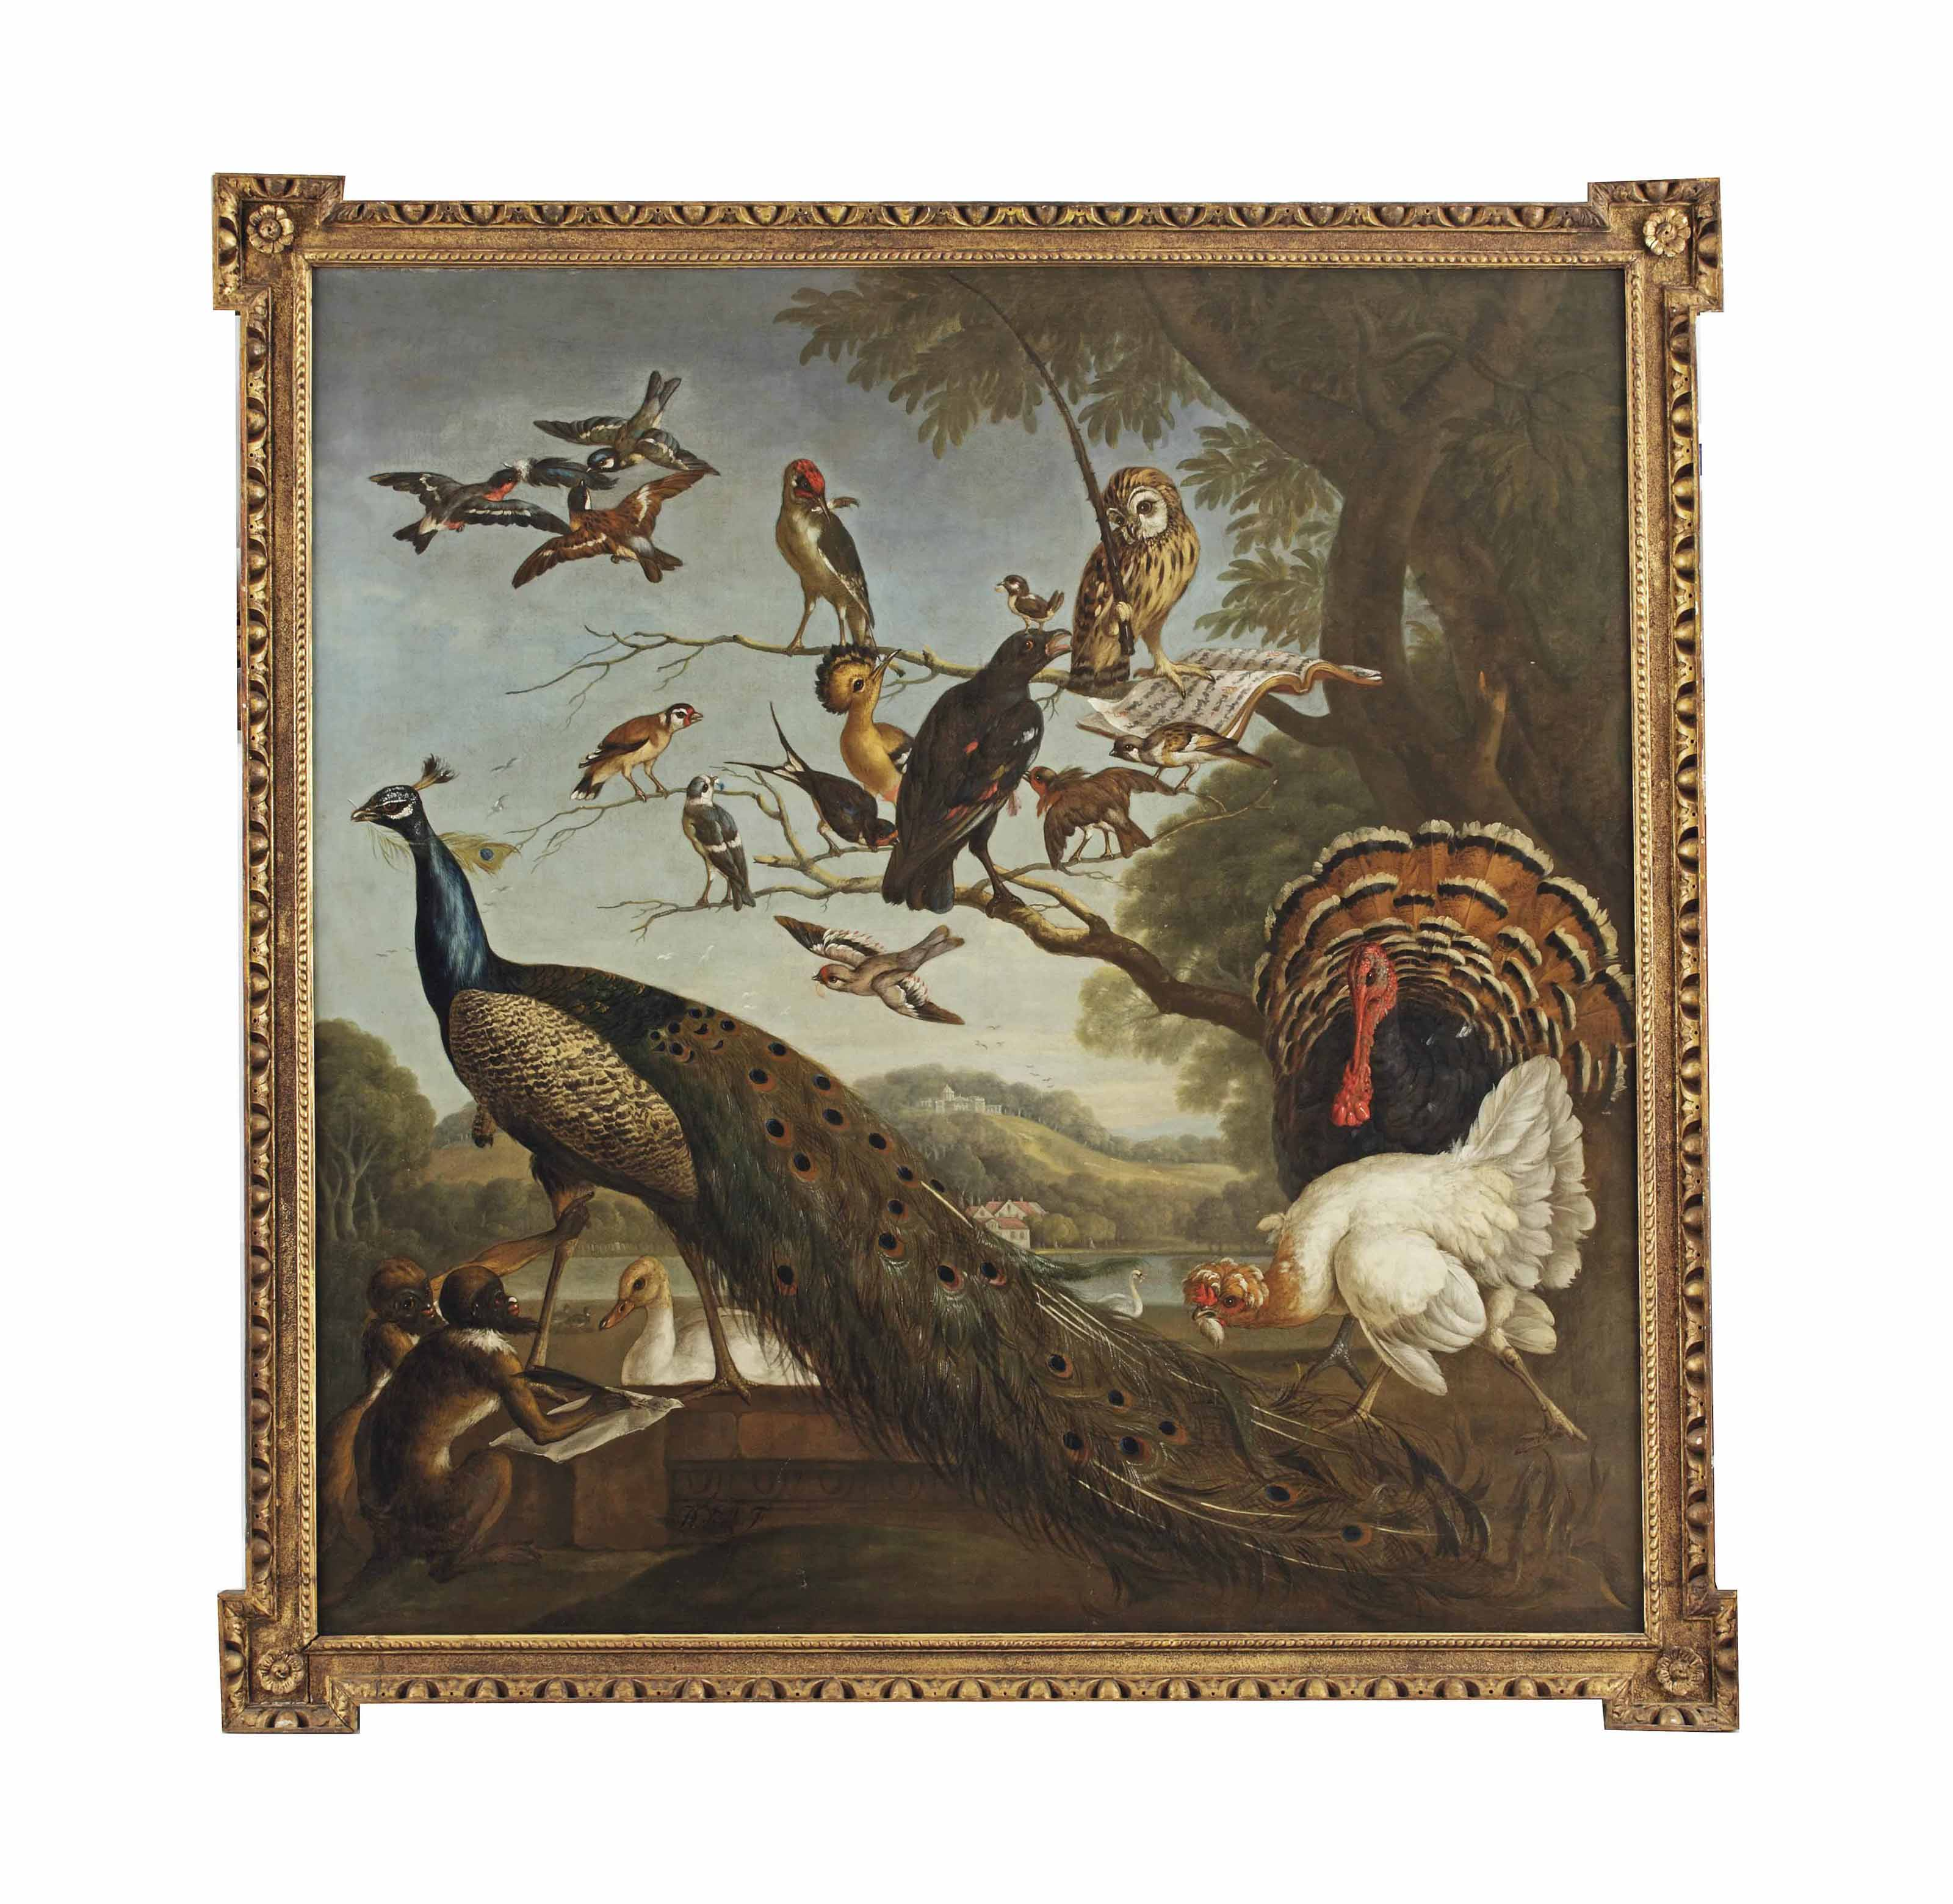 A bird's concert with Aesop's Fable of the Stolen Feathers